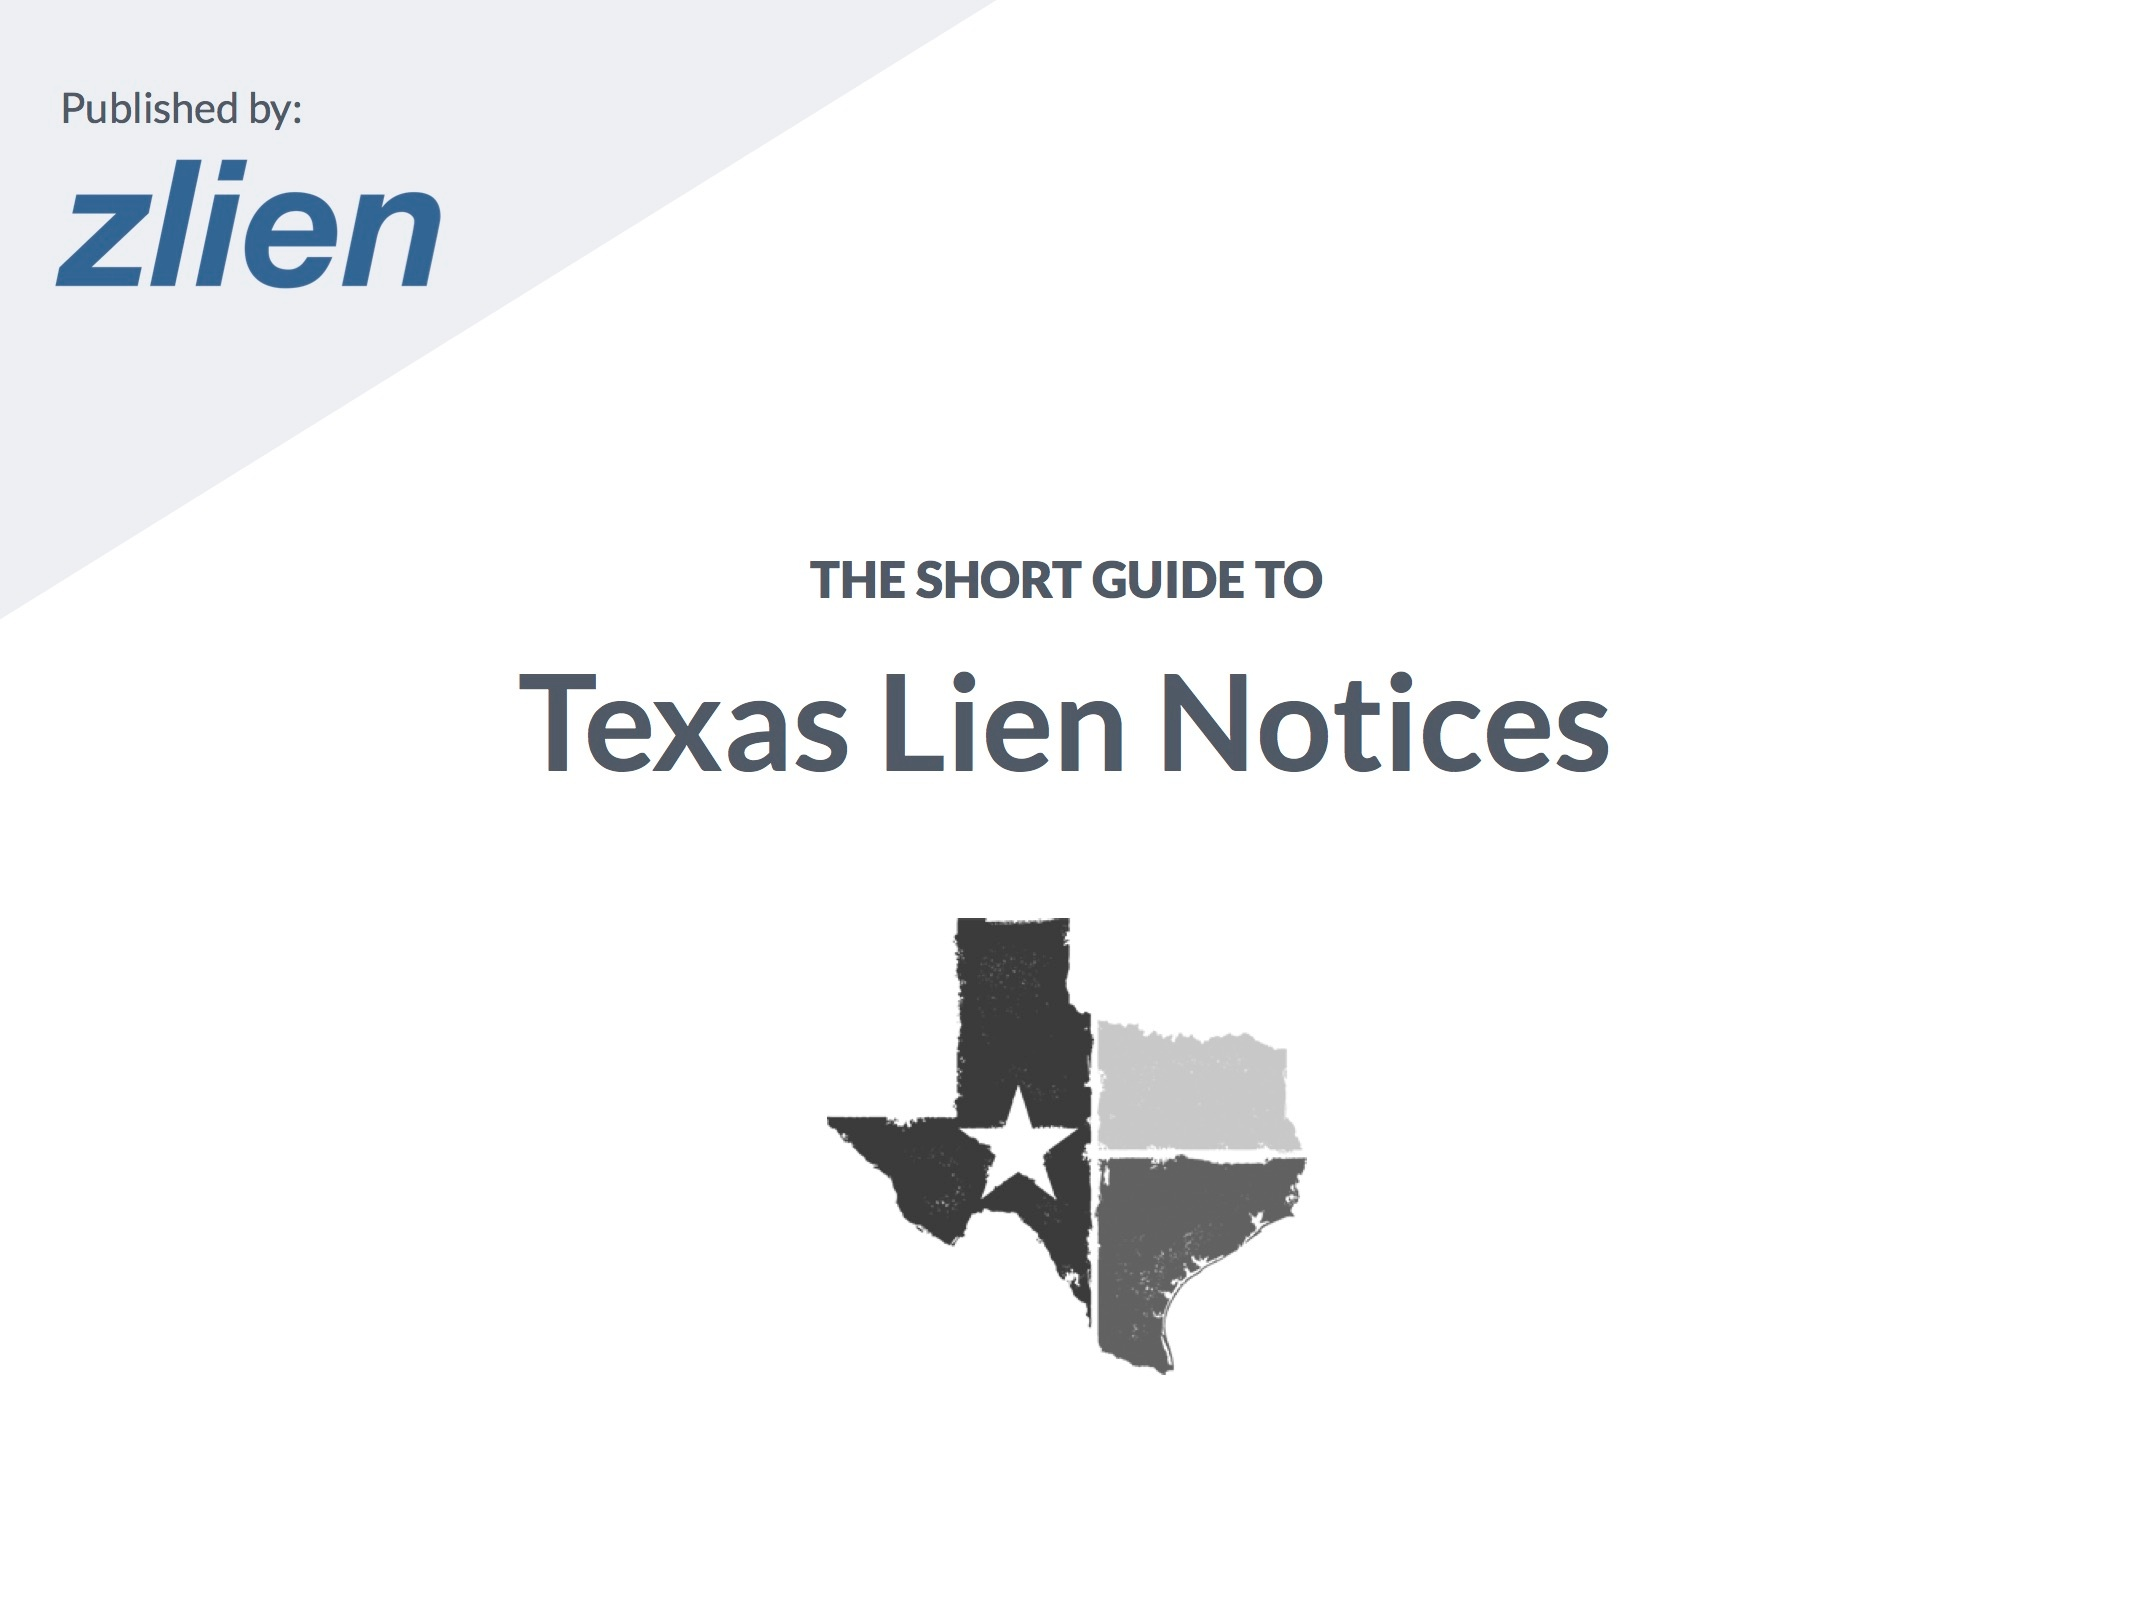 2016 Short Guide to Texas Monthly Notices.jpg